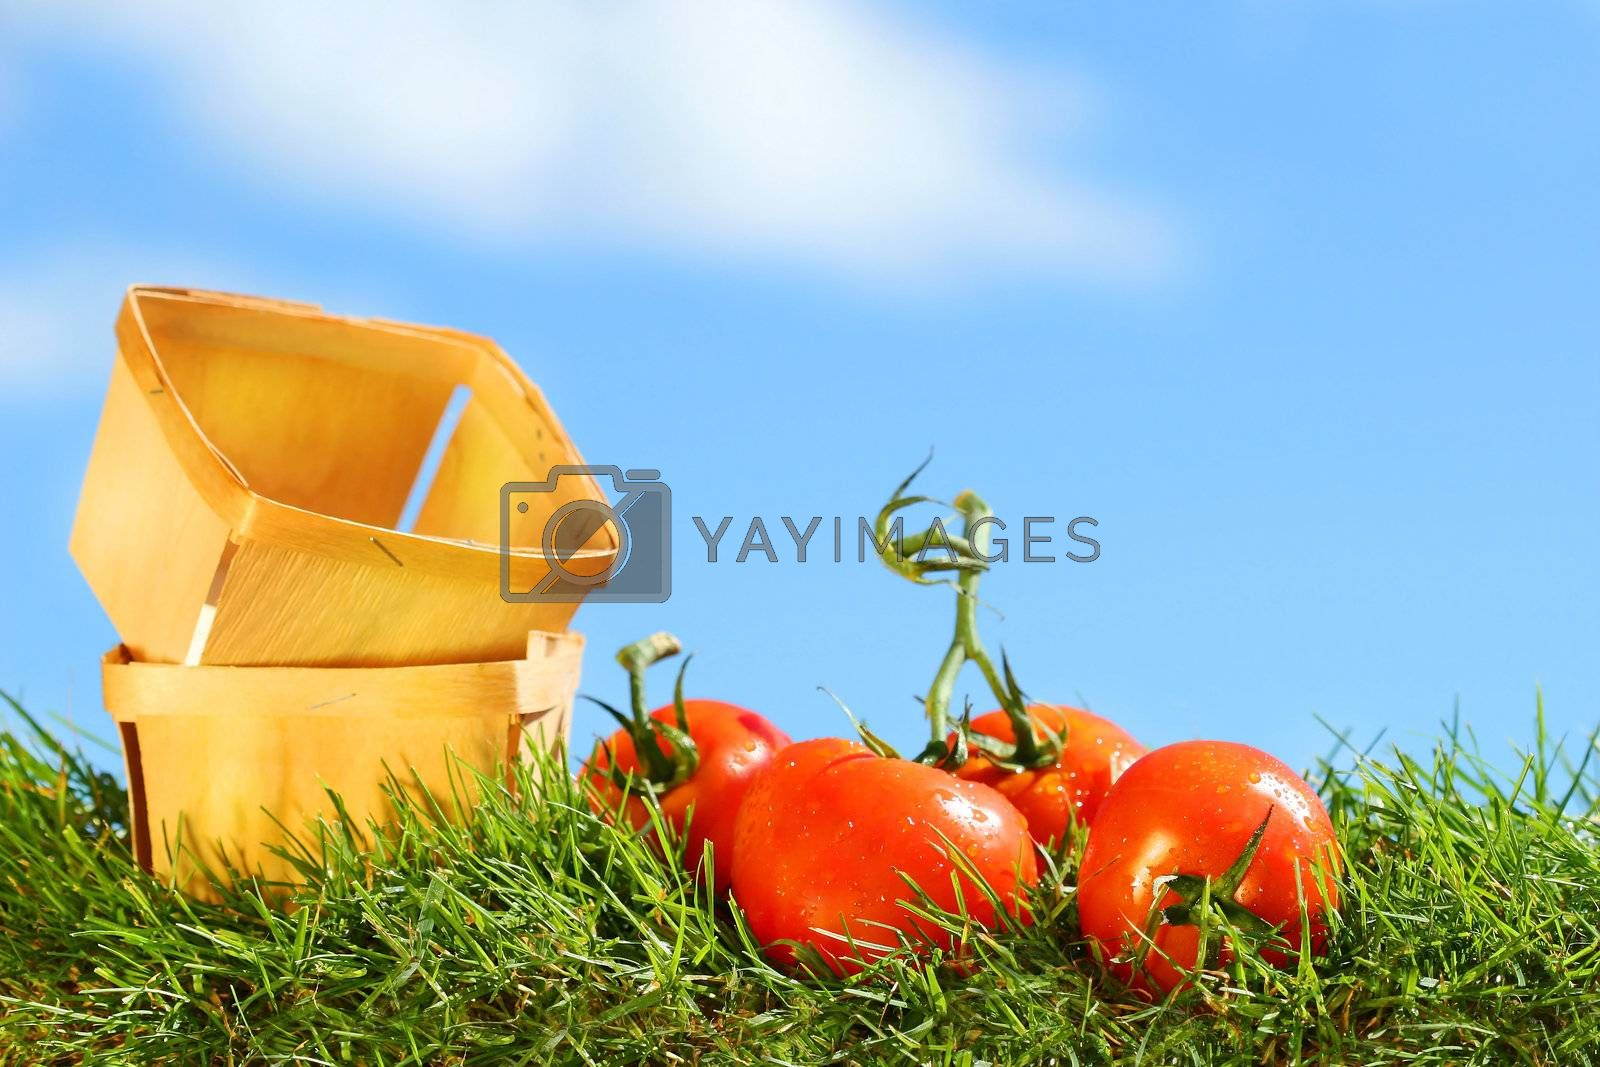 Freshly picked tomatoes on grass against a blue sky